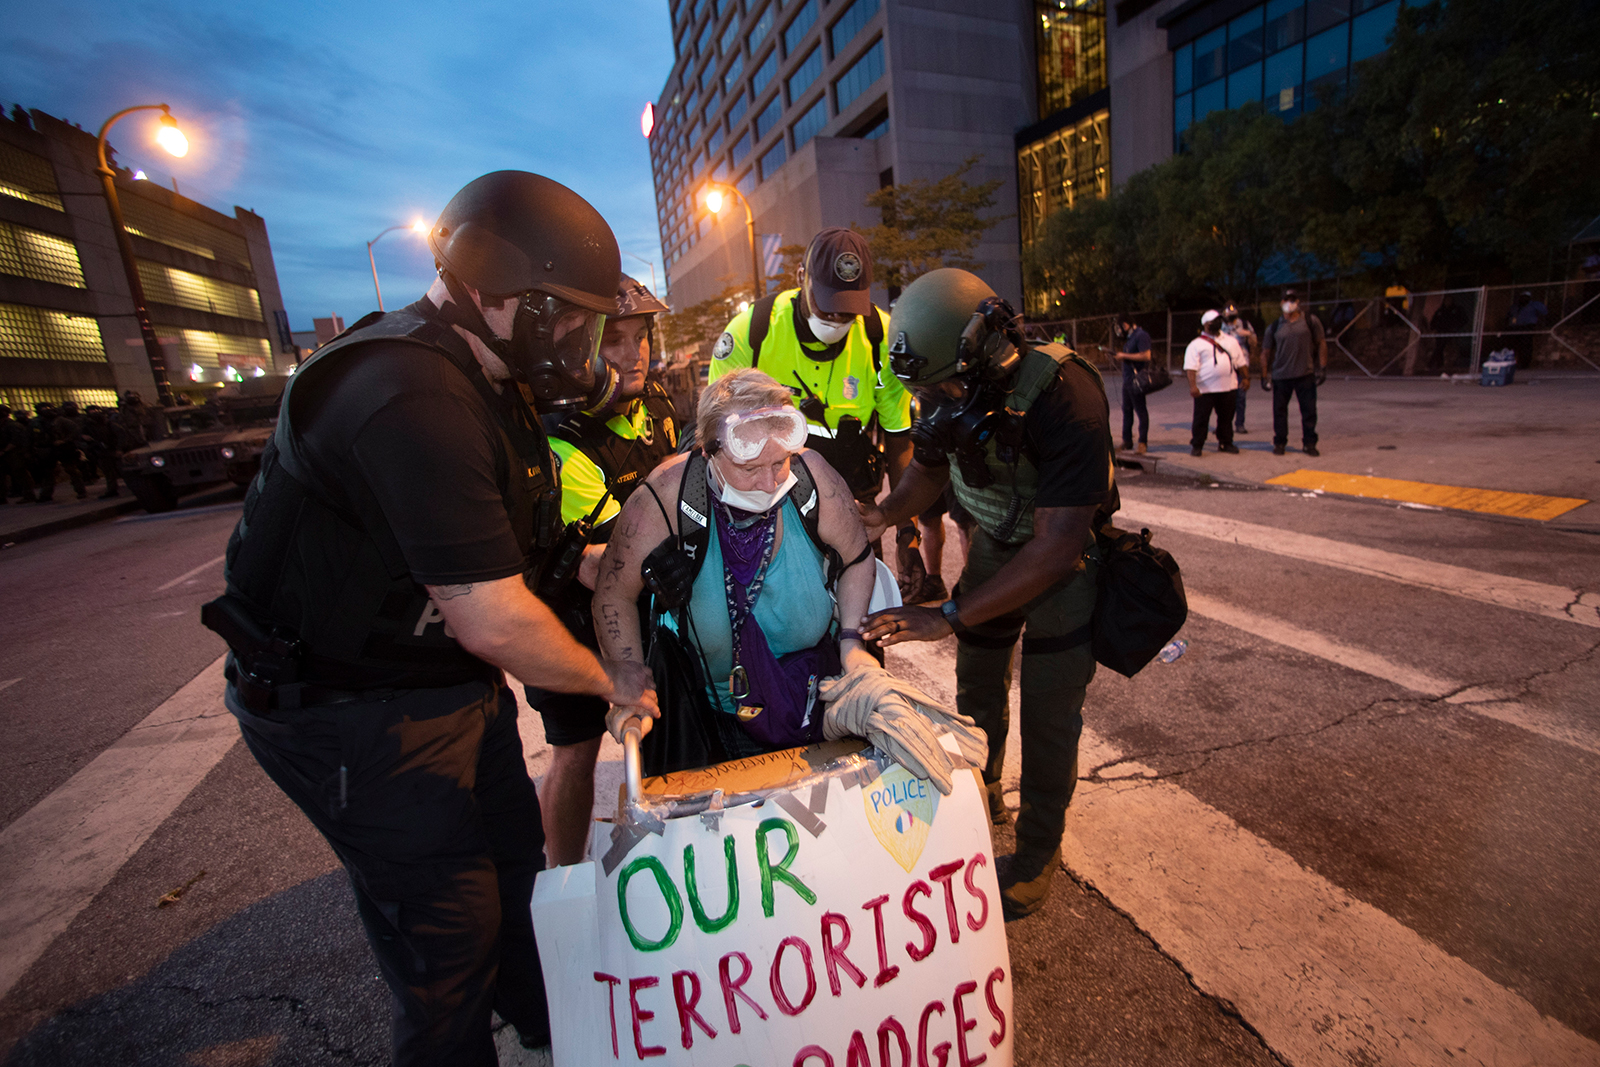 A woman is helped to her feet by police officers after she agreed to stop blocking a street during a protest, on June 3, in Atlanta.